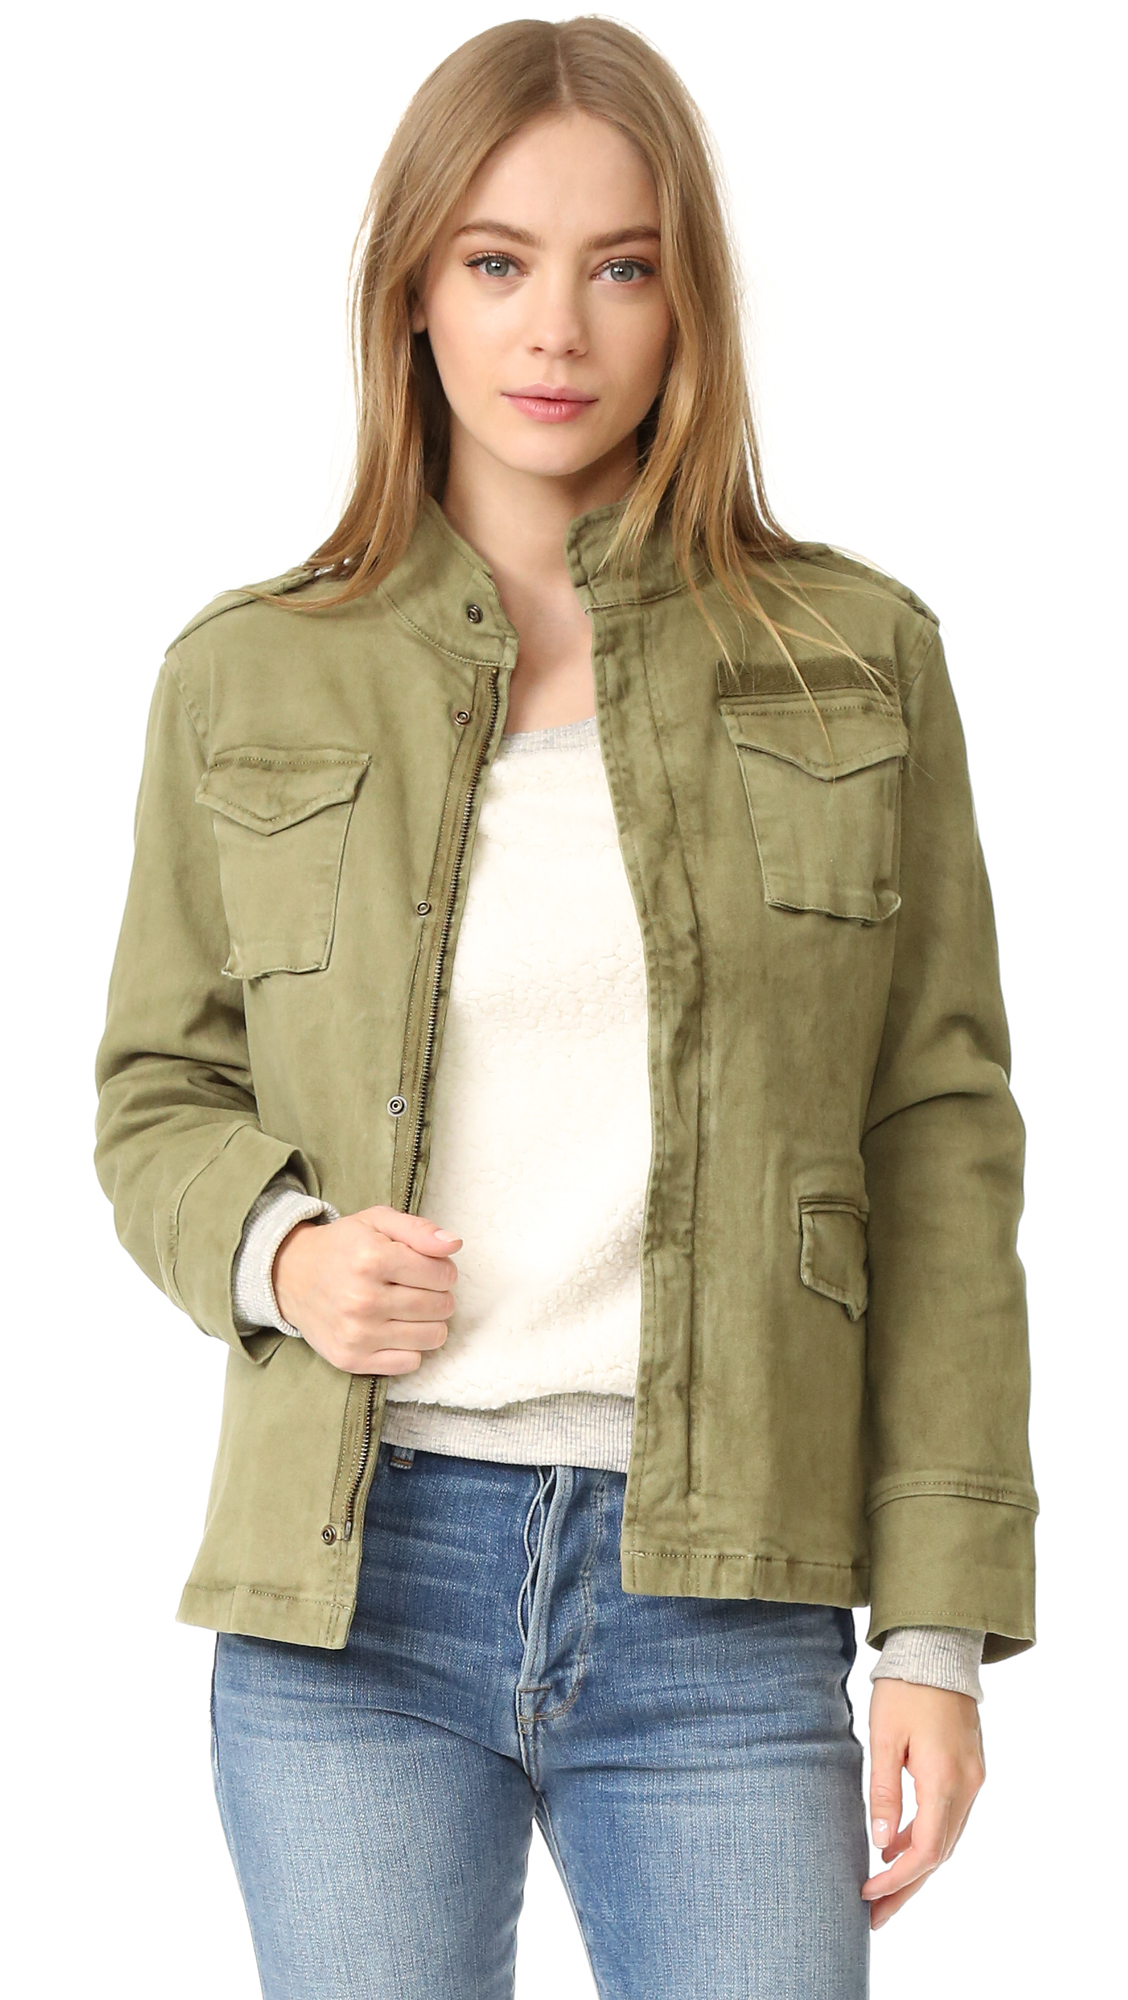 Anine Bing Army Jacket - Army Green at Shopbop